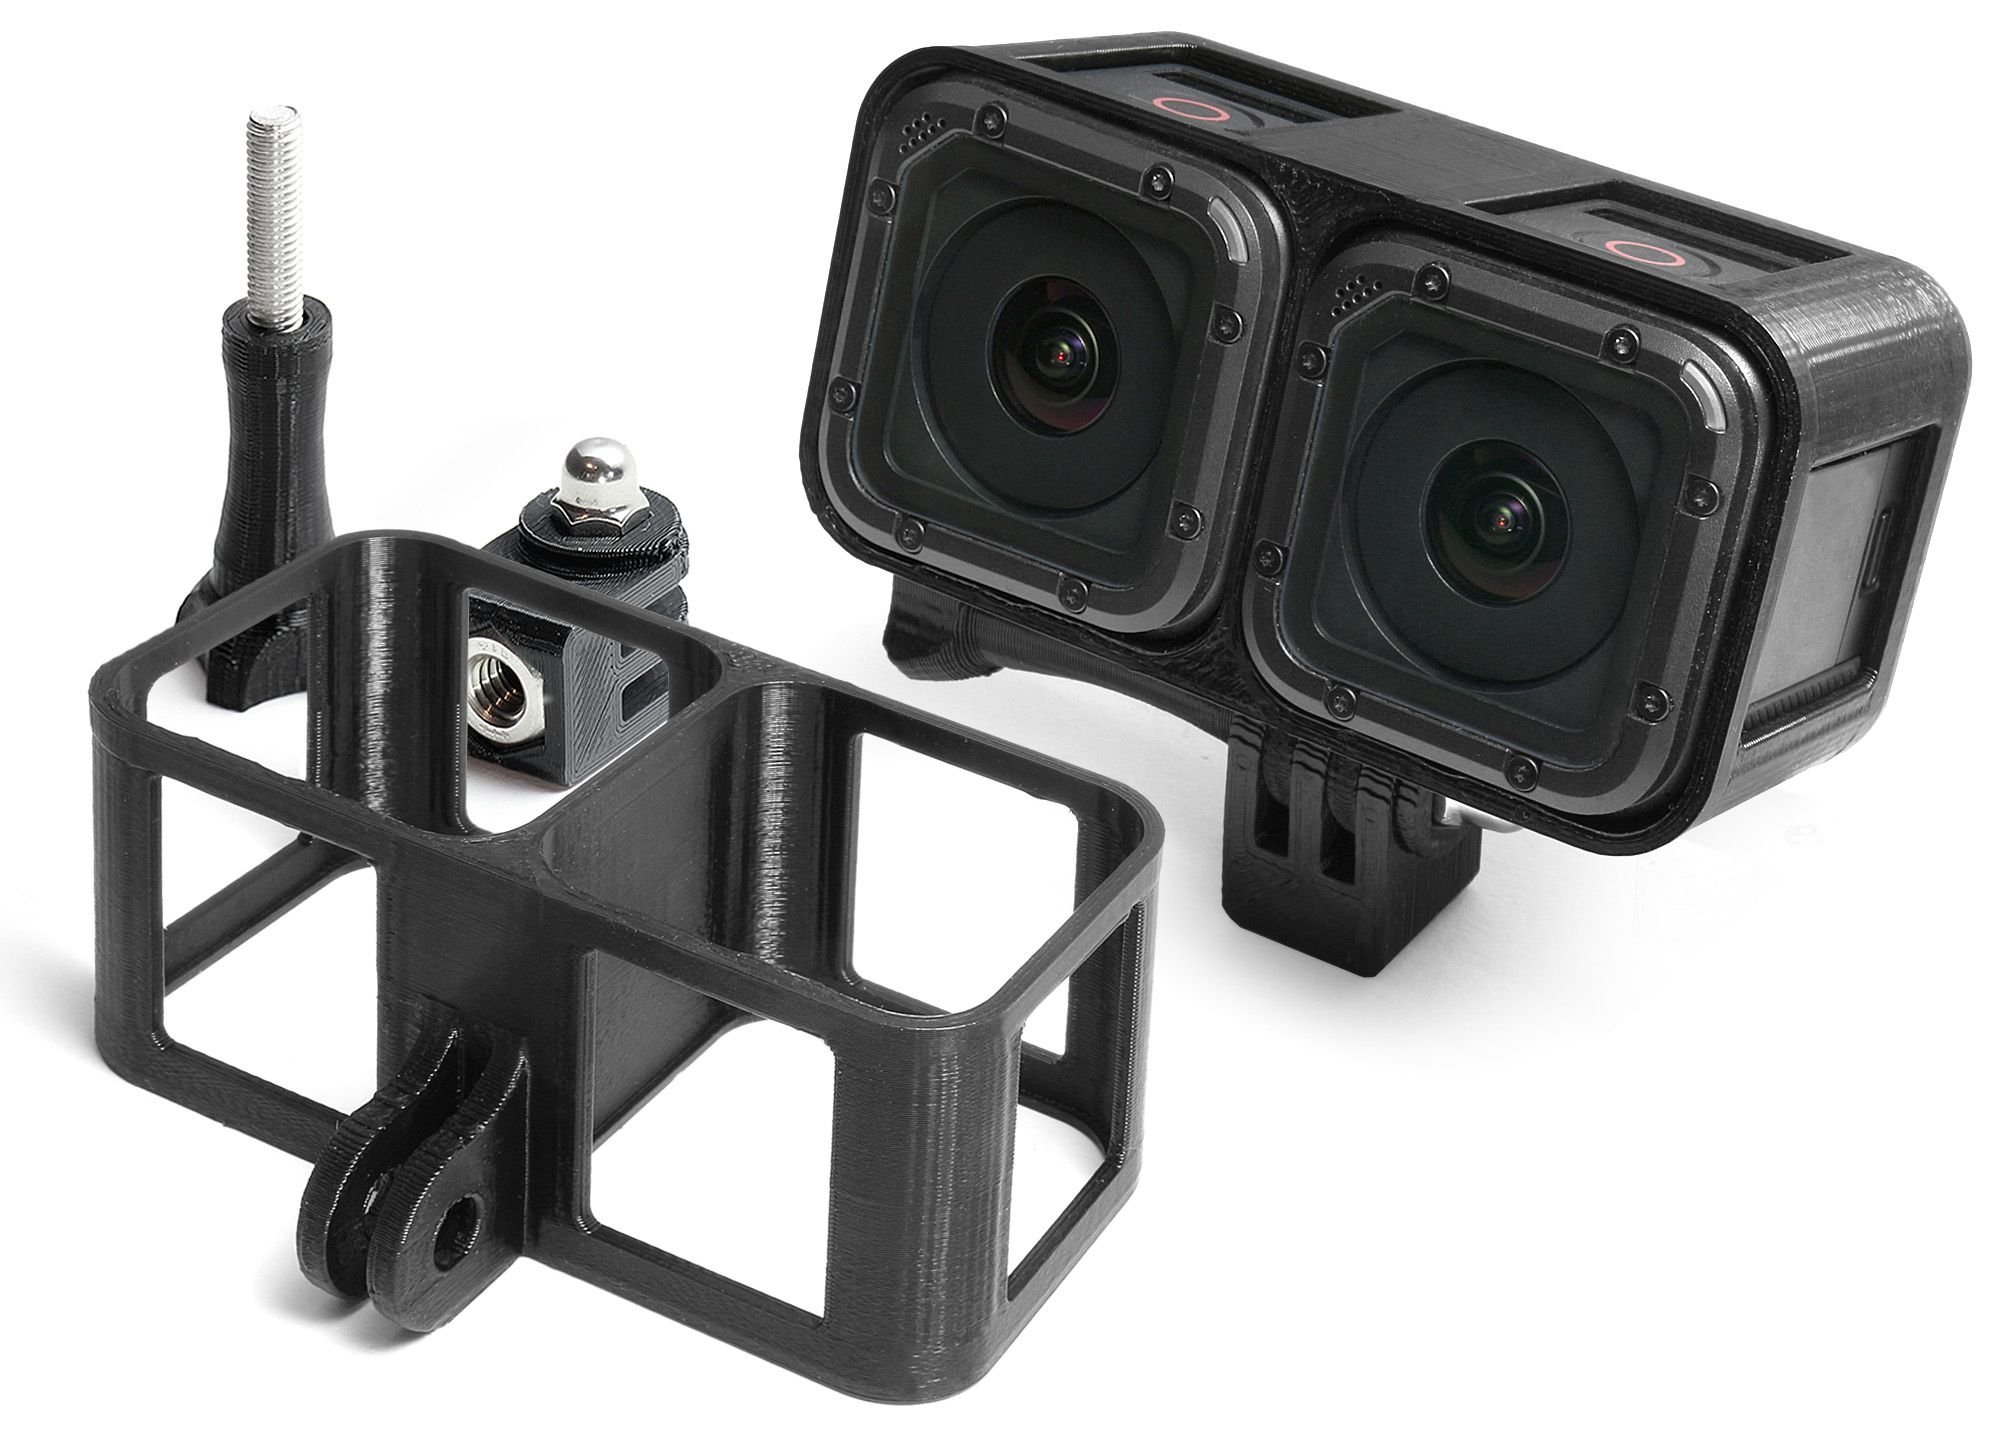 1cb0a09052e6ba 3D Frame for GoPro HERO4 Session | VR & 360 Video | Gopro ...